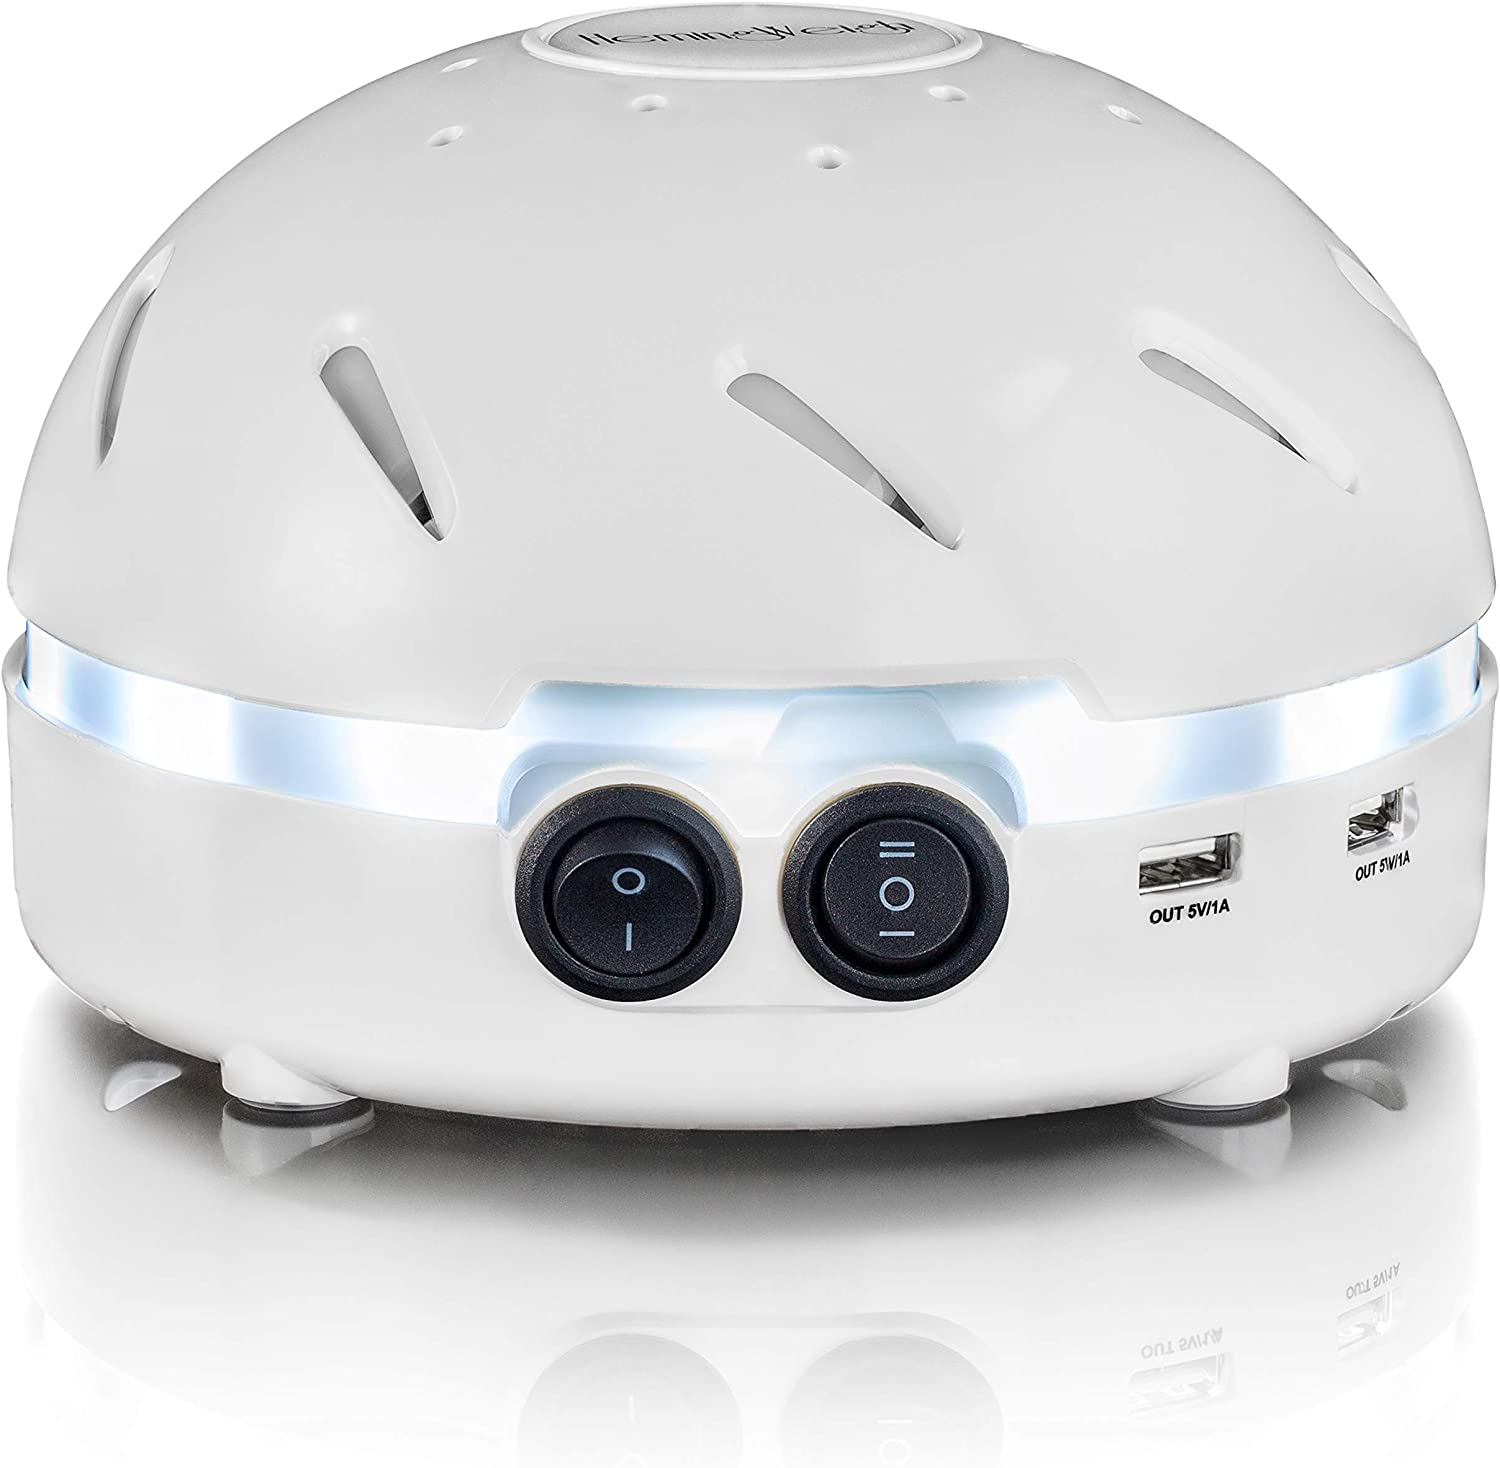 HemingWeigh White Noise Sound Machine Quality Sounds Masks Disturbing Noise and Reducing Sound for Improved Sleep Relaxation and Enriched Concentration – Built in USB LED Night Light.